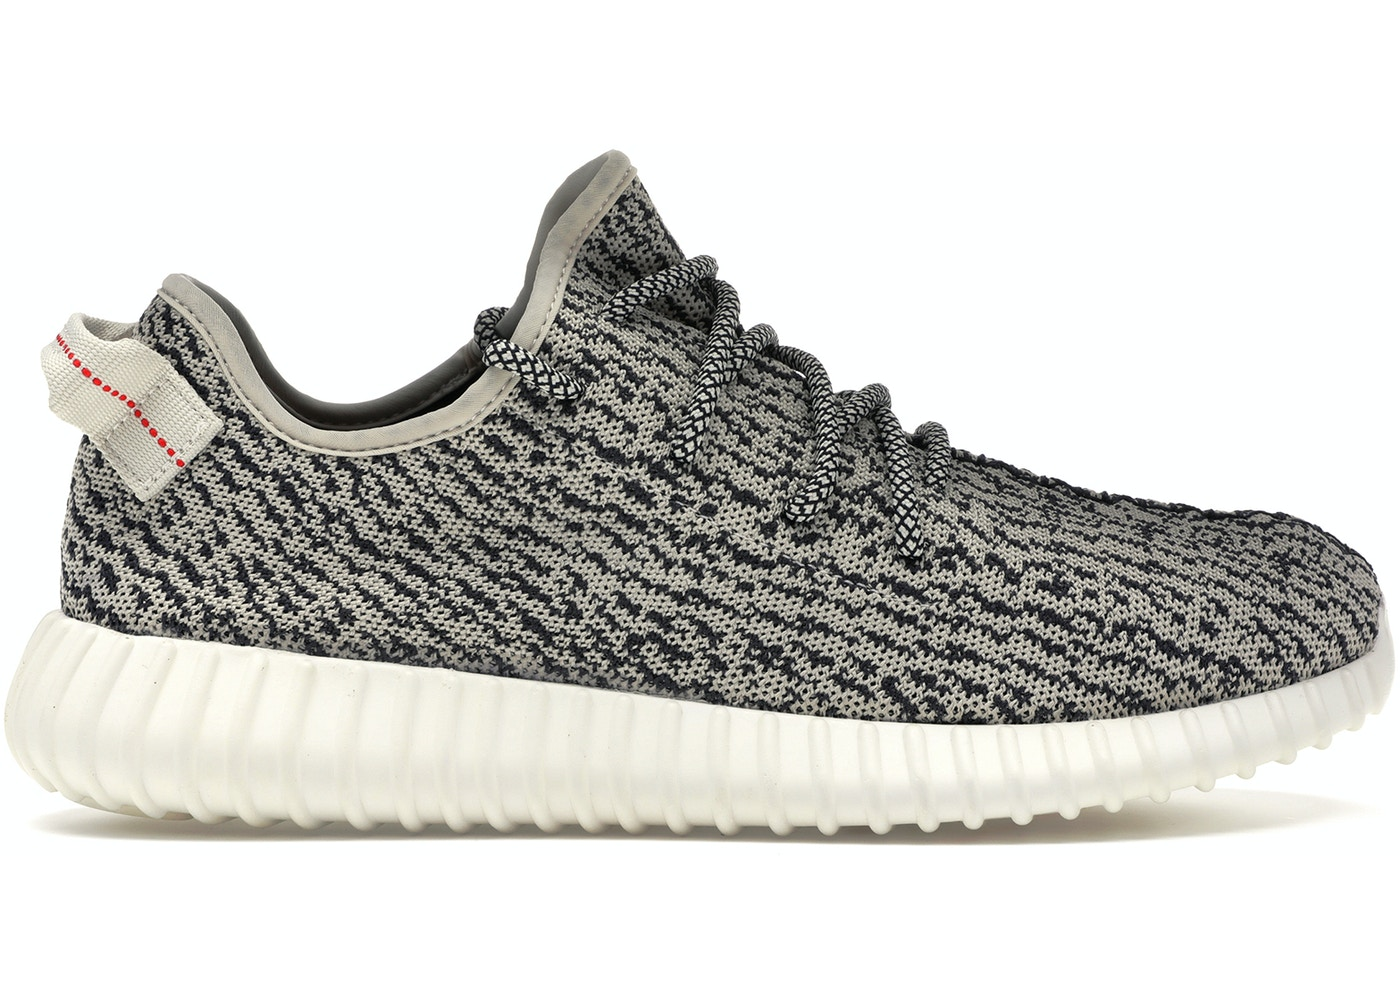 best service b61da fff14 adidas Yeezy Shoes - Price Premium